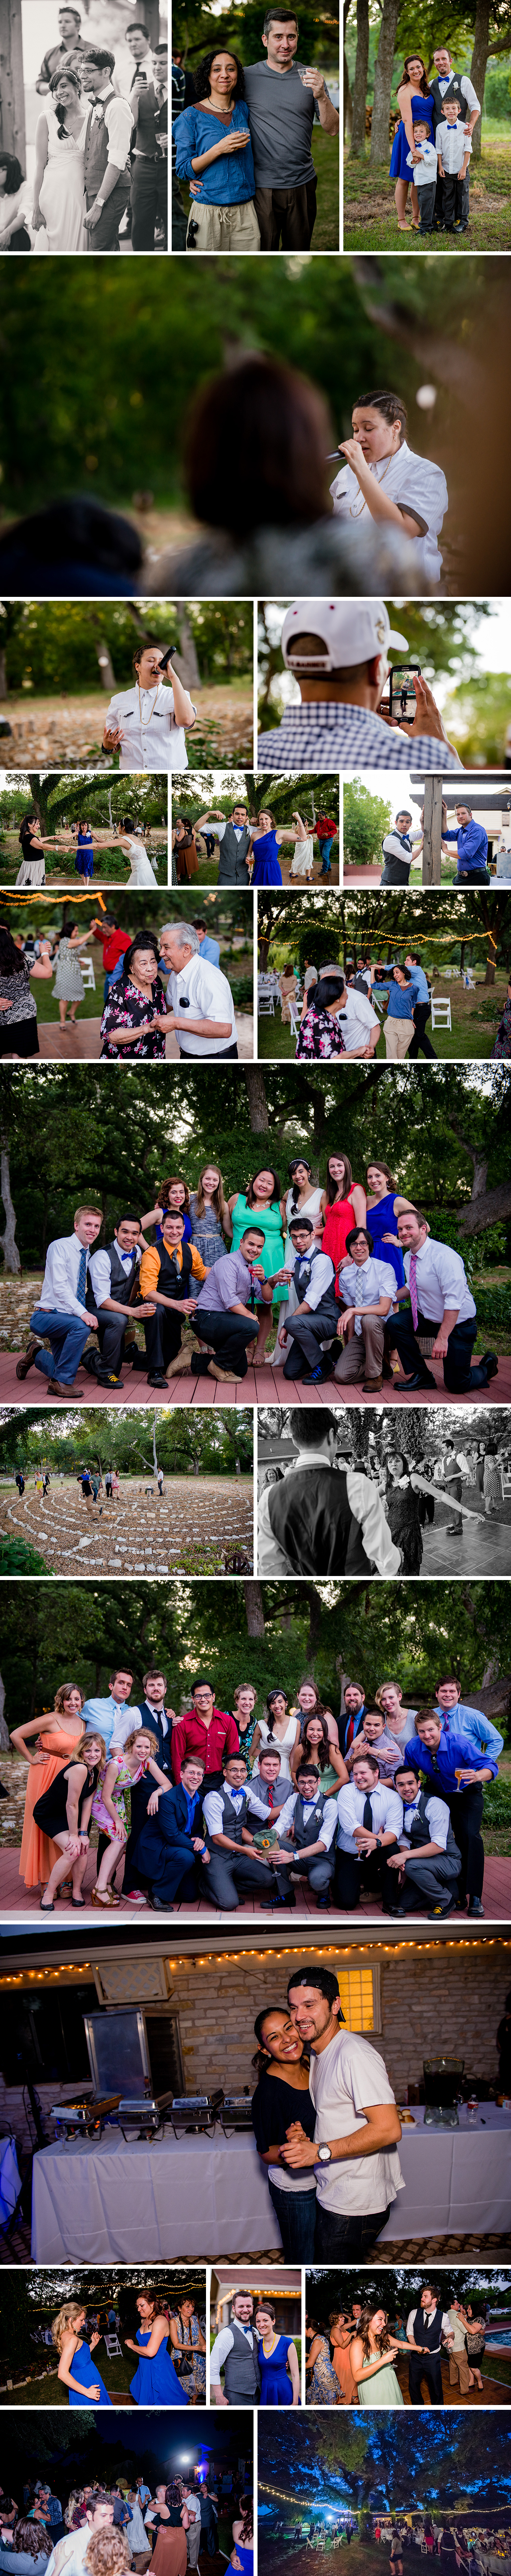 Fort Wayne Wedding Photography.jpg